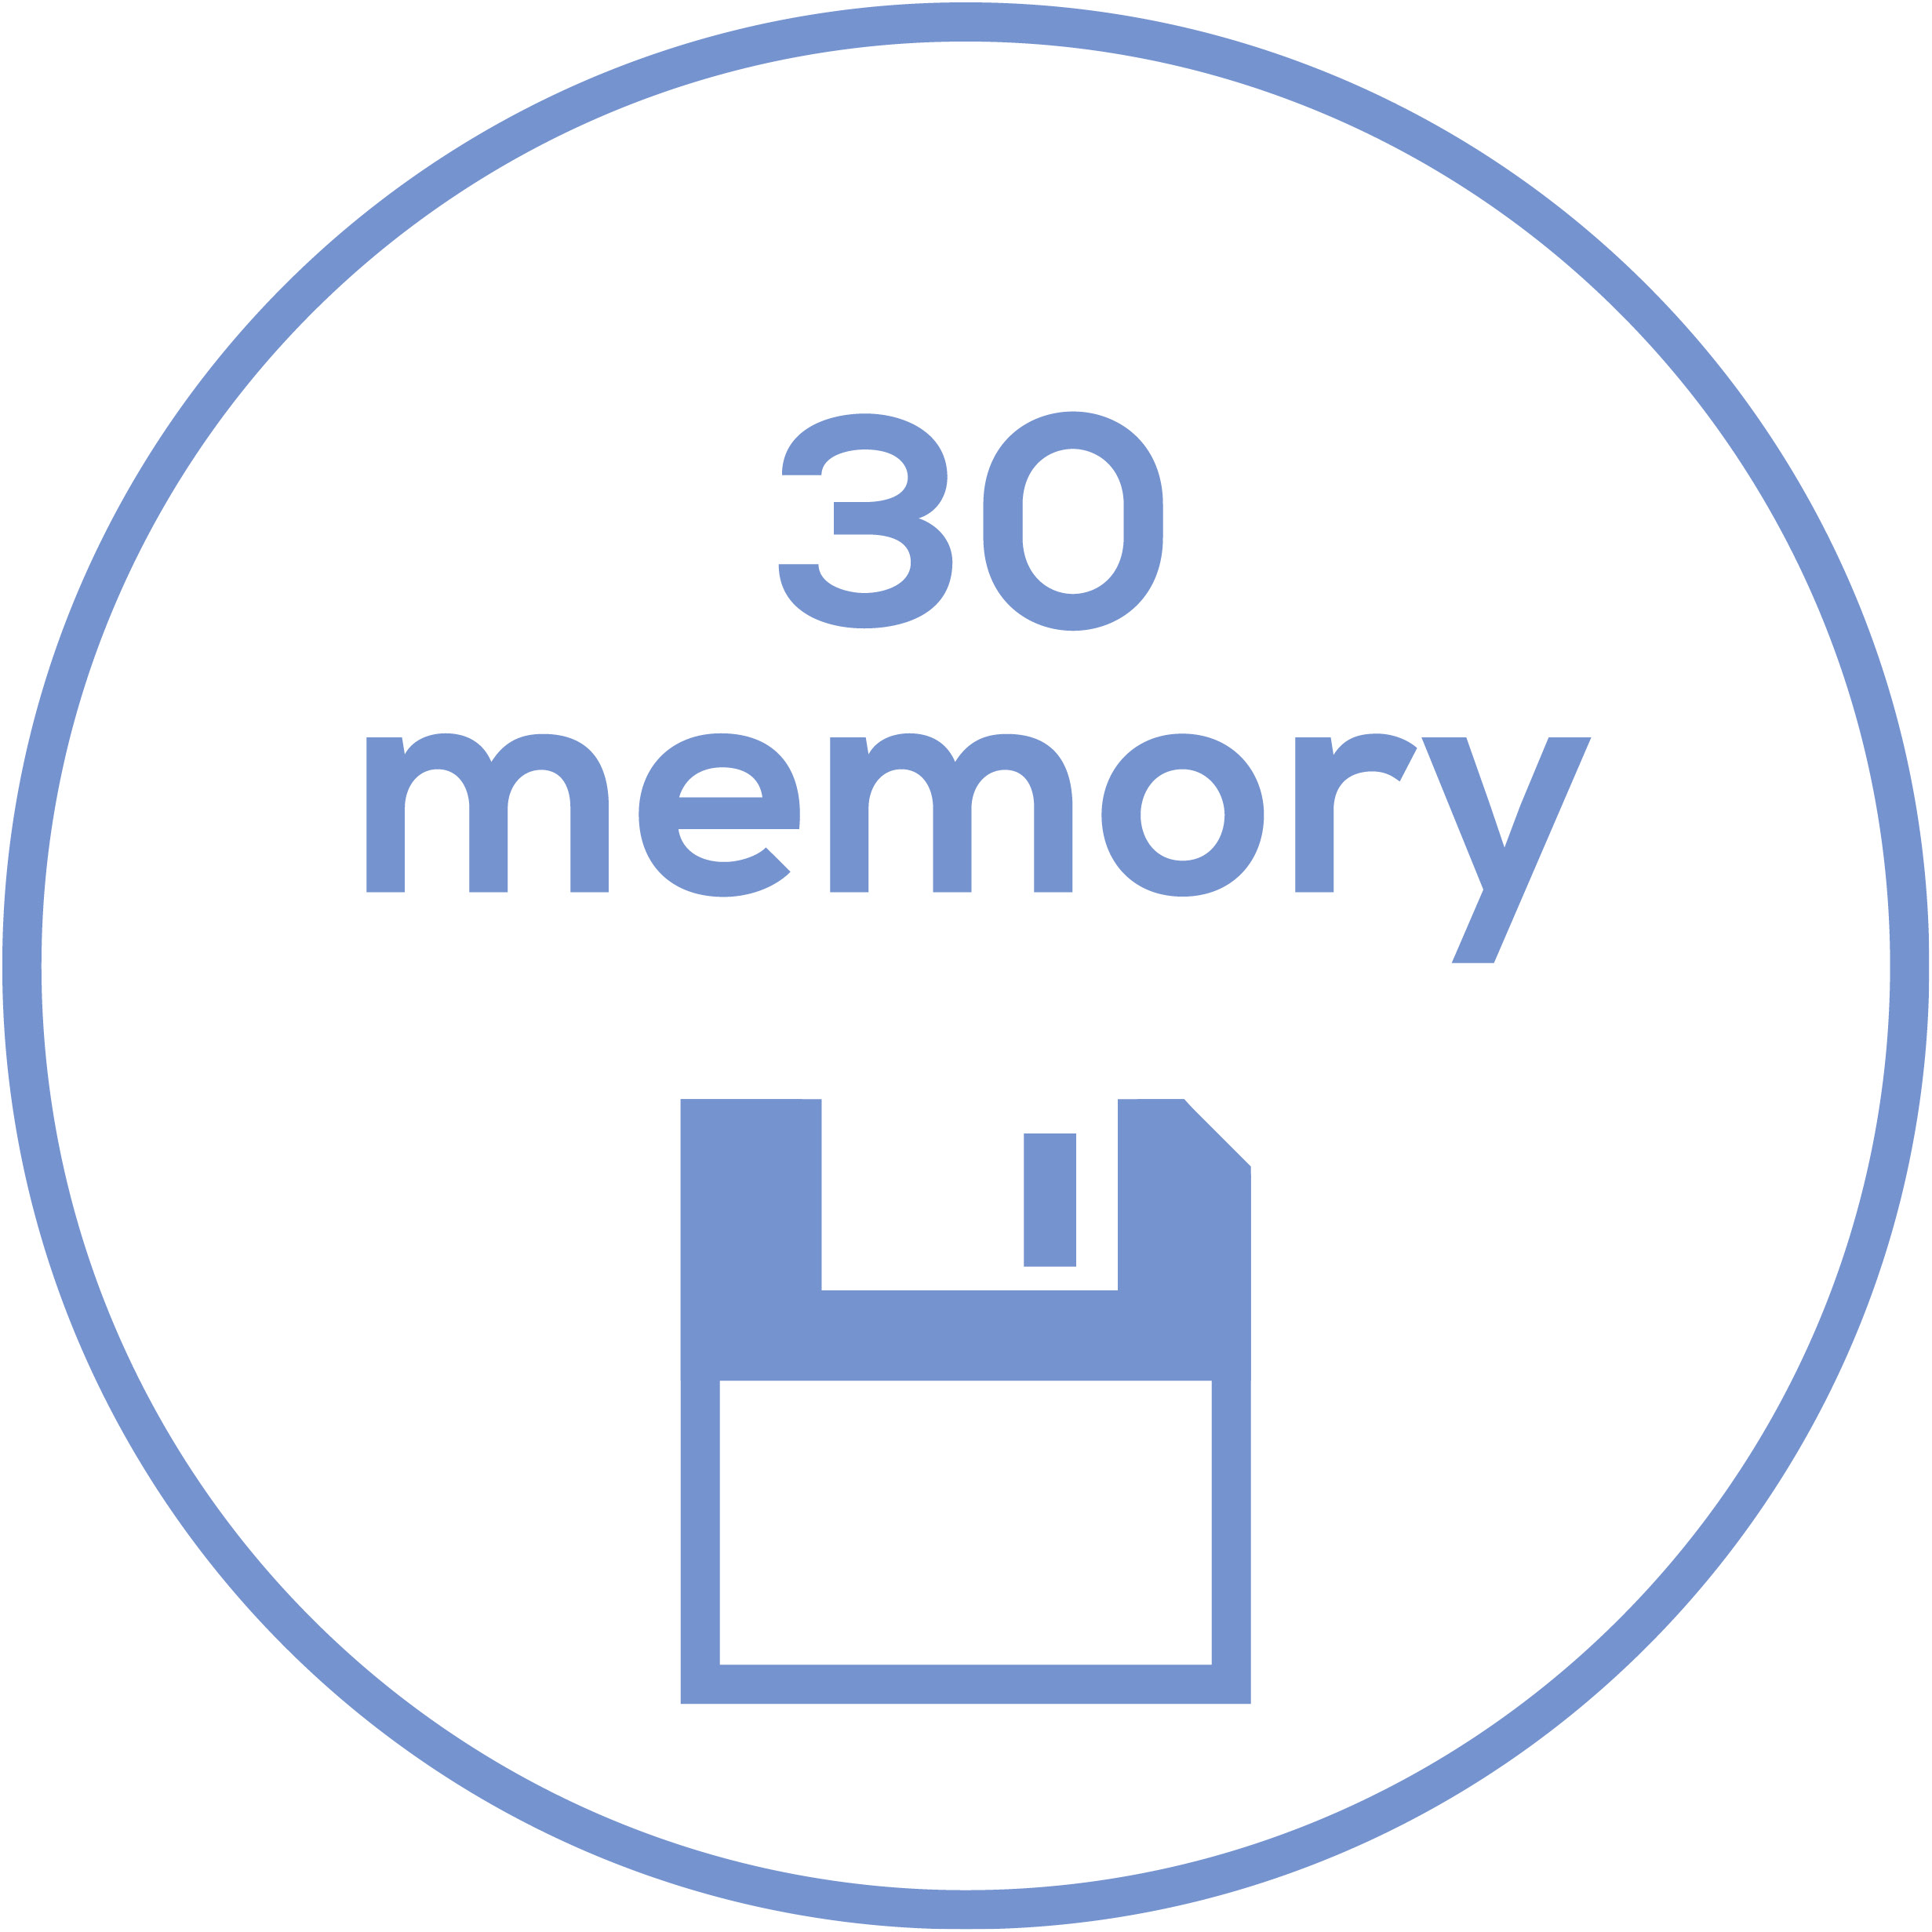 Memory function 30 memory spaces